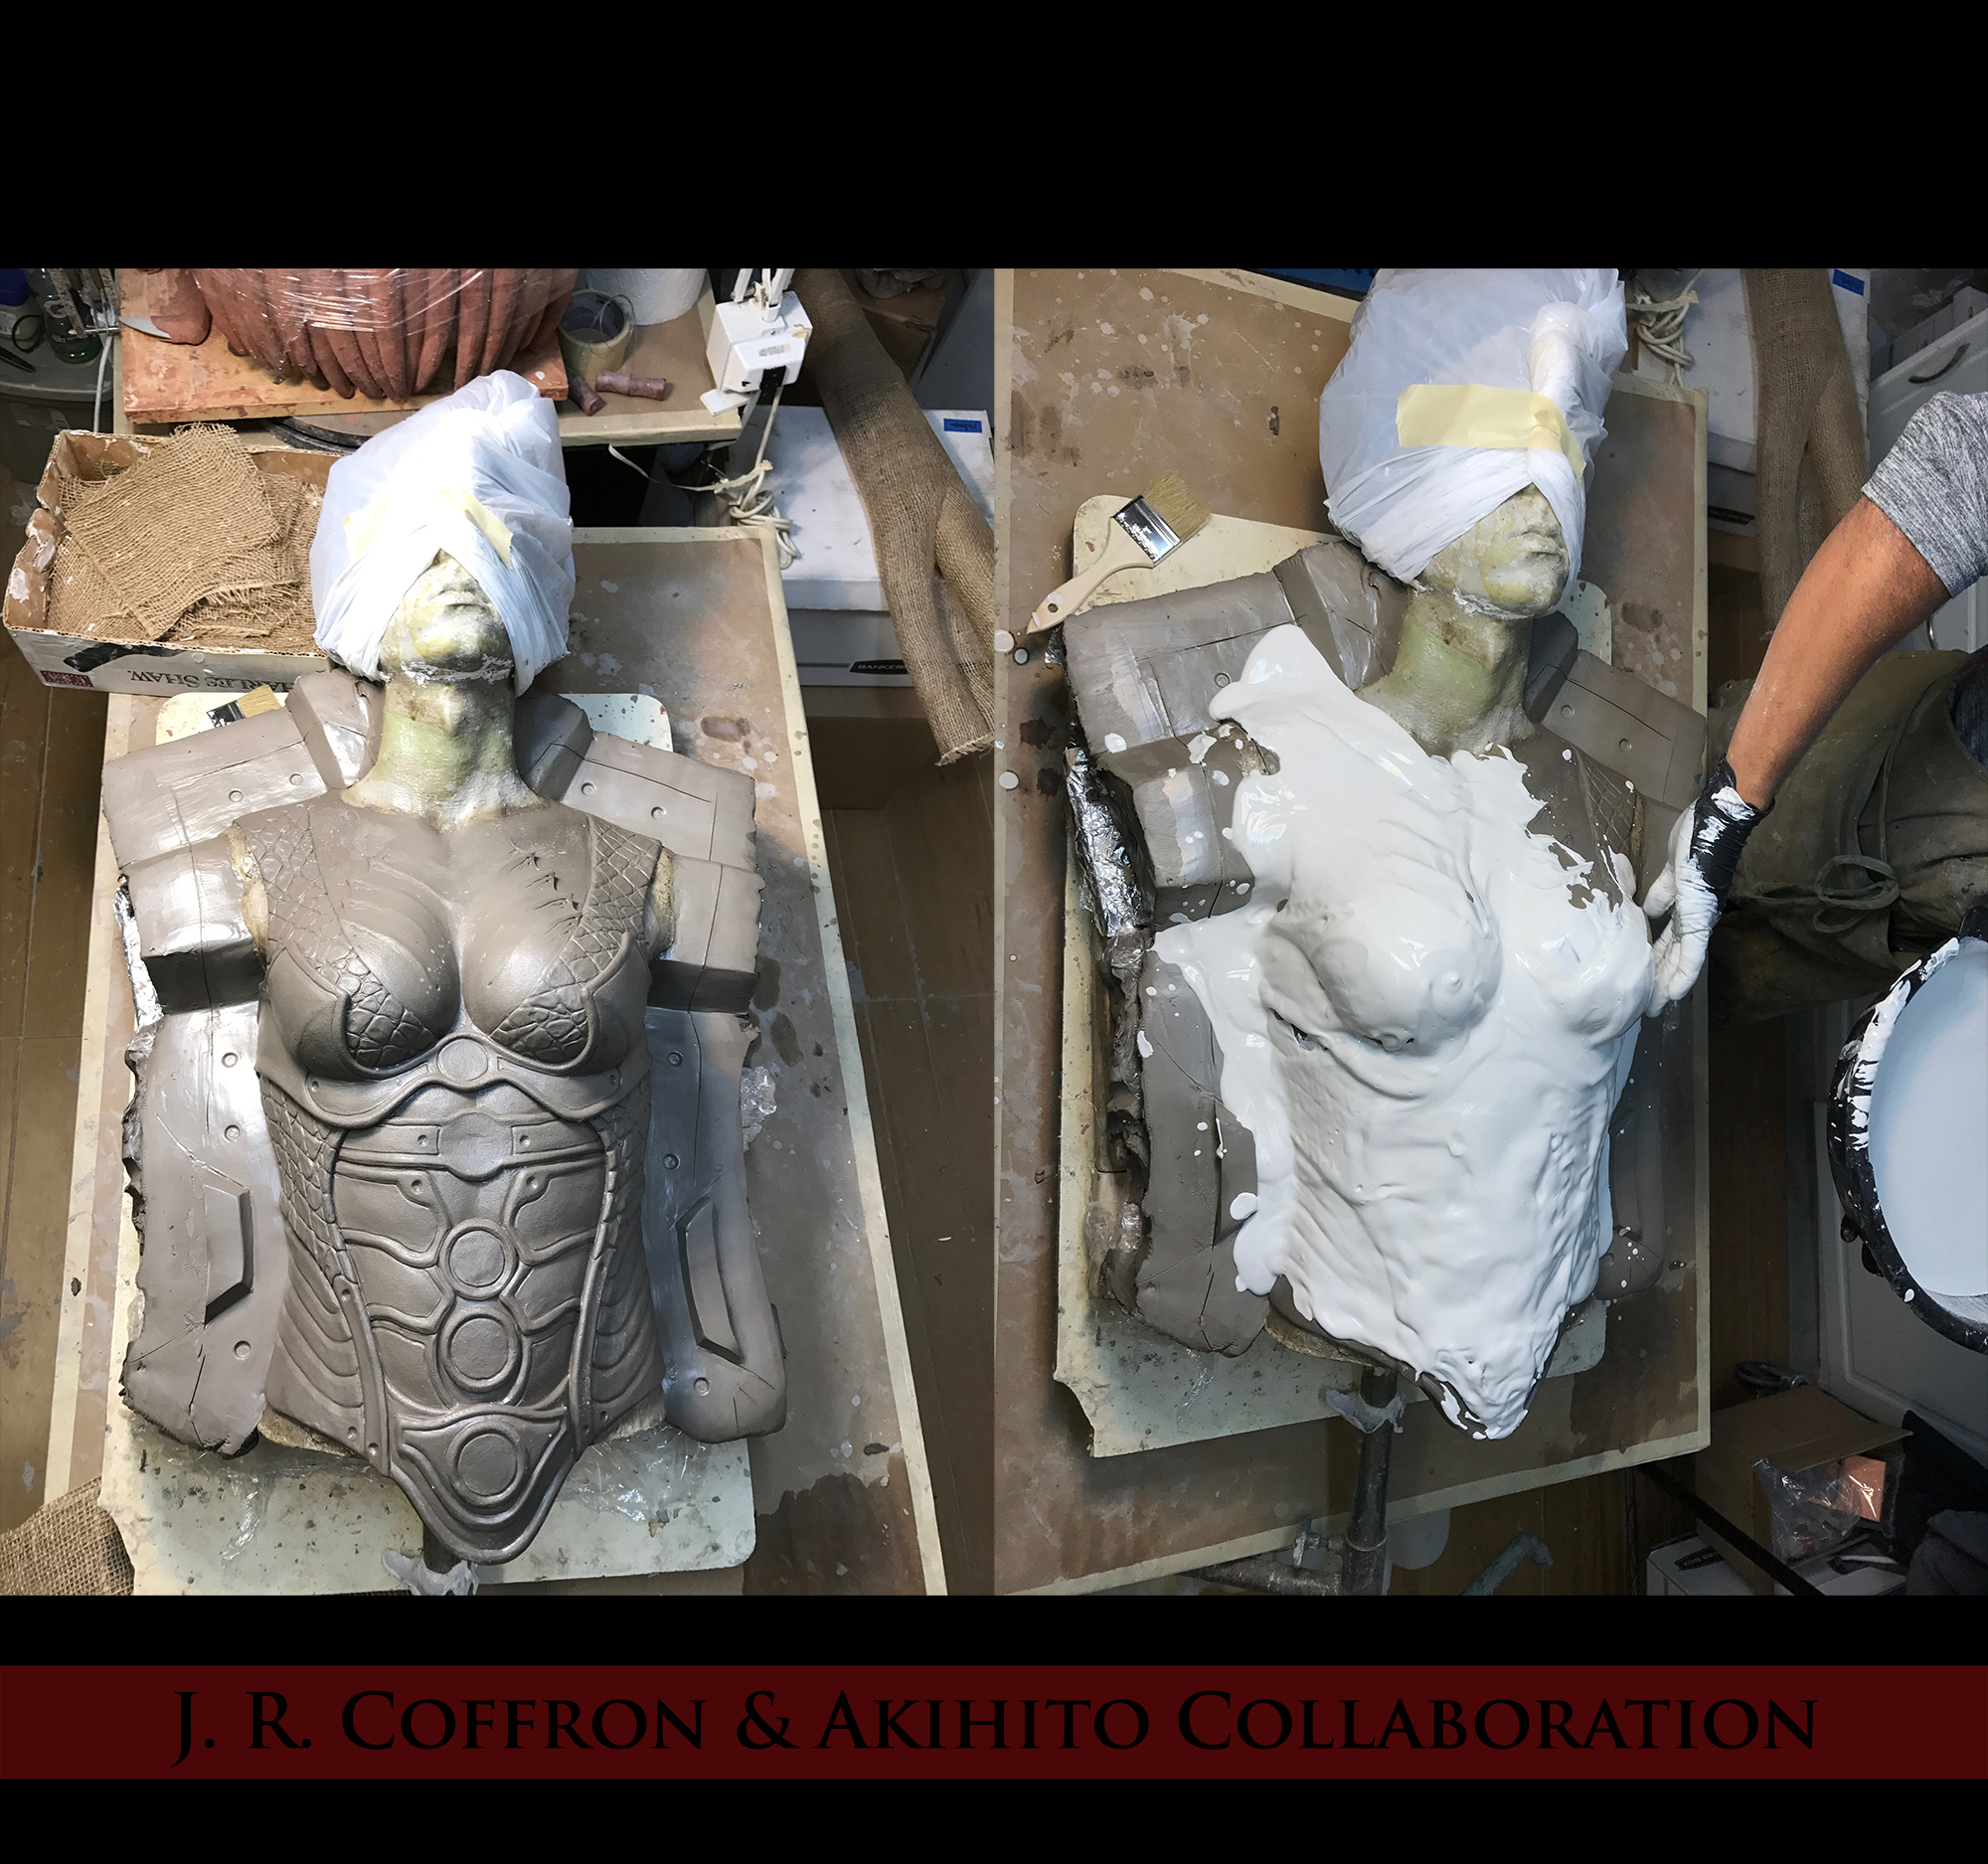 In these images, Akihito begins his molding process.